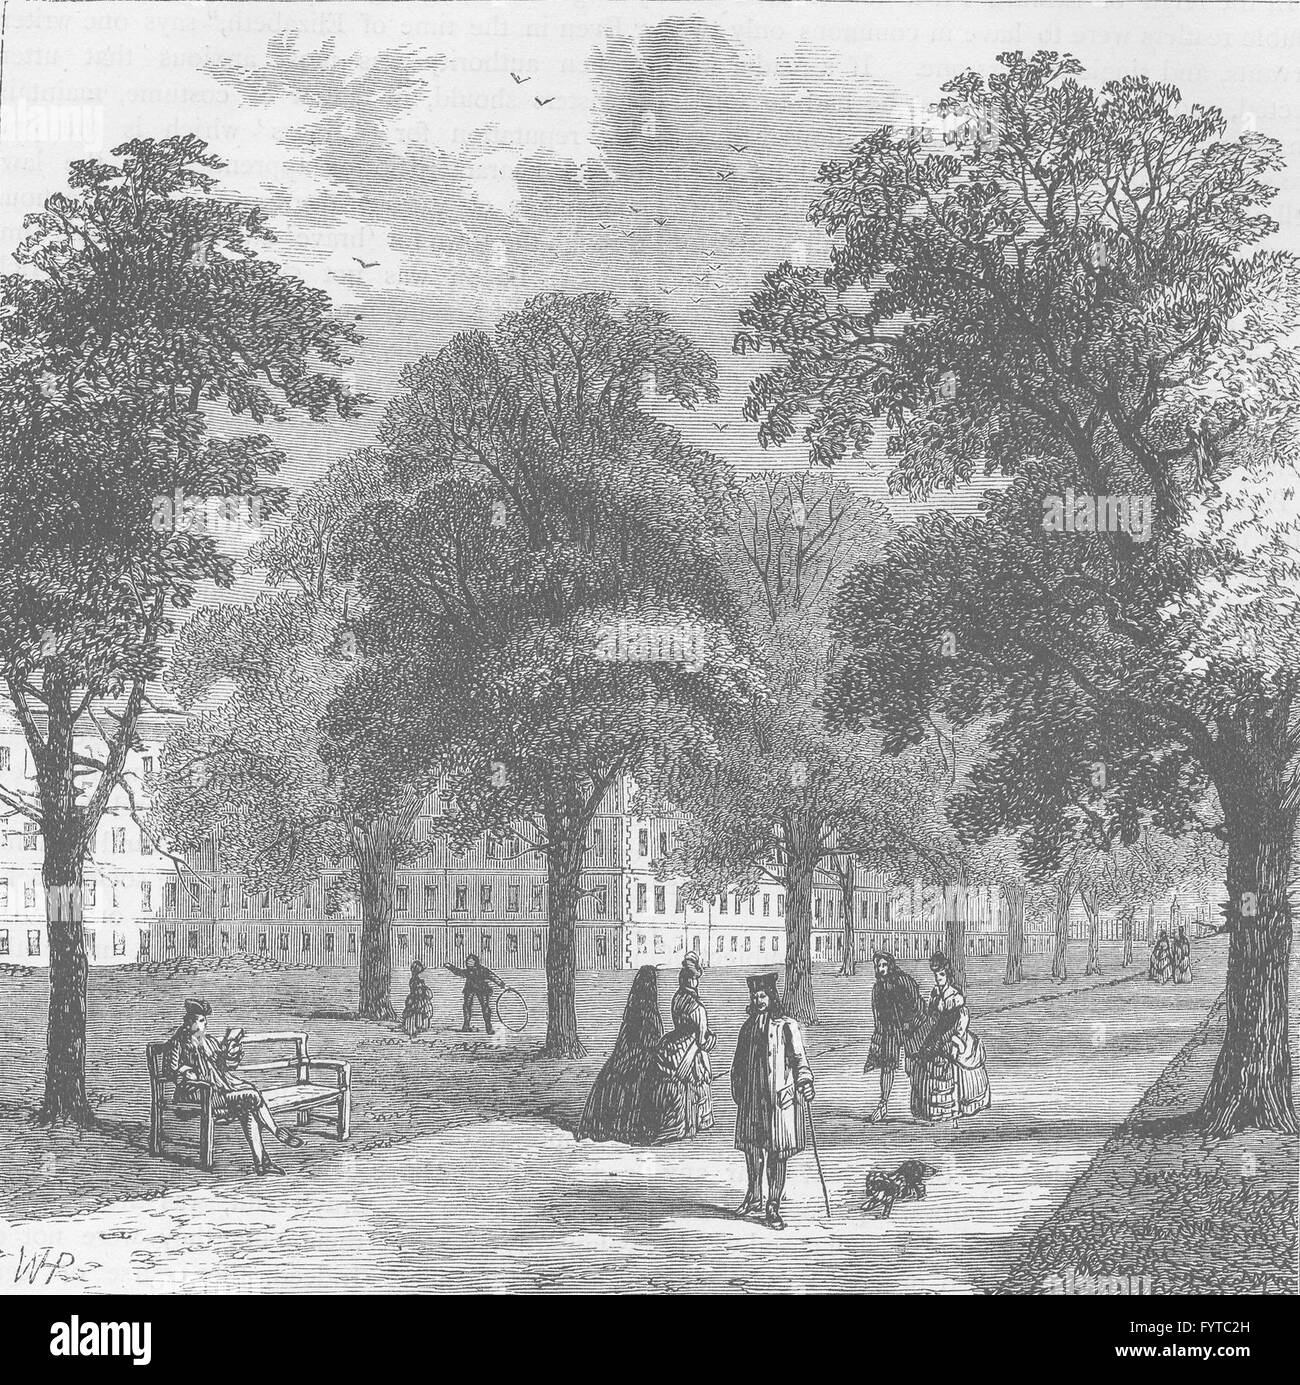 THE HOLBORN INNS OF COURT AND CHANCERY: Gray's Inn Gardens, 1770. London, c1880 - Stock Image